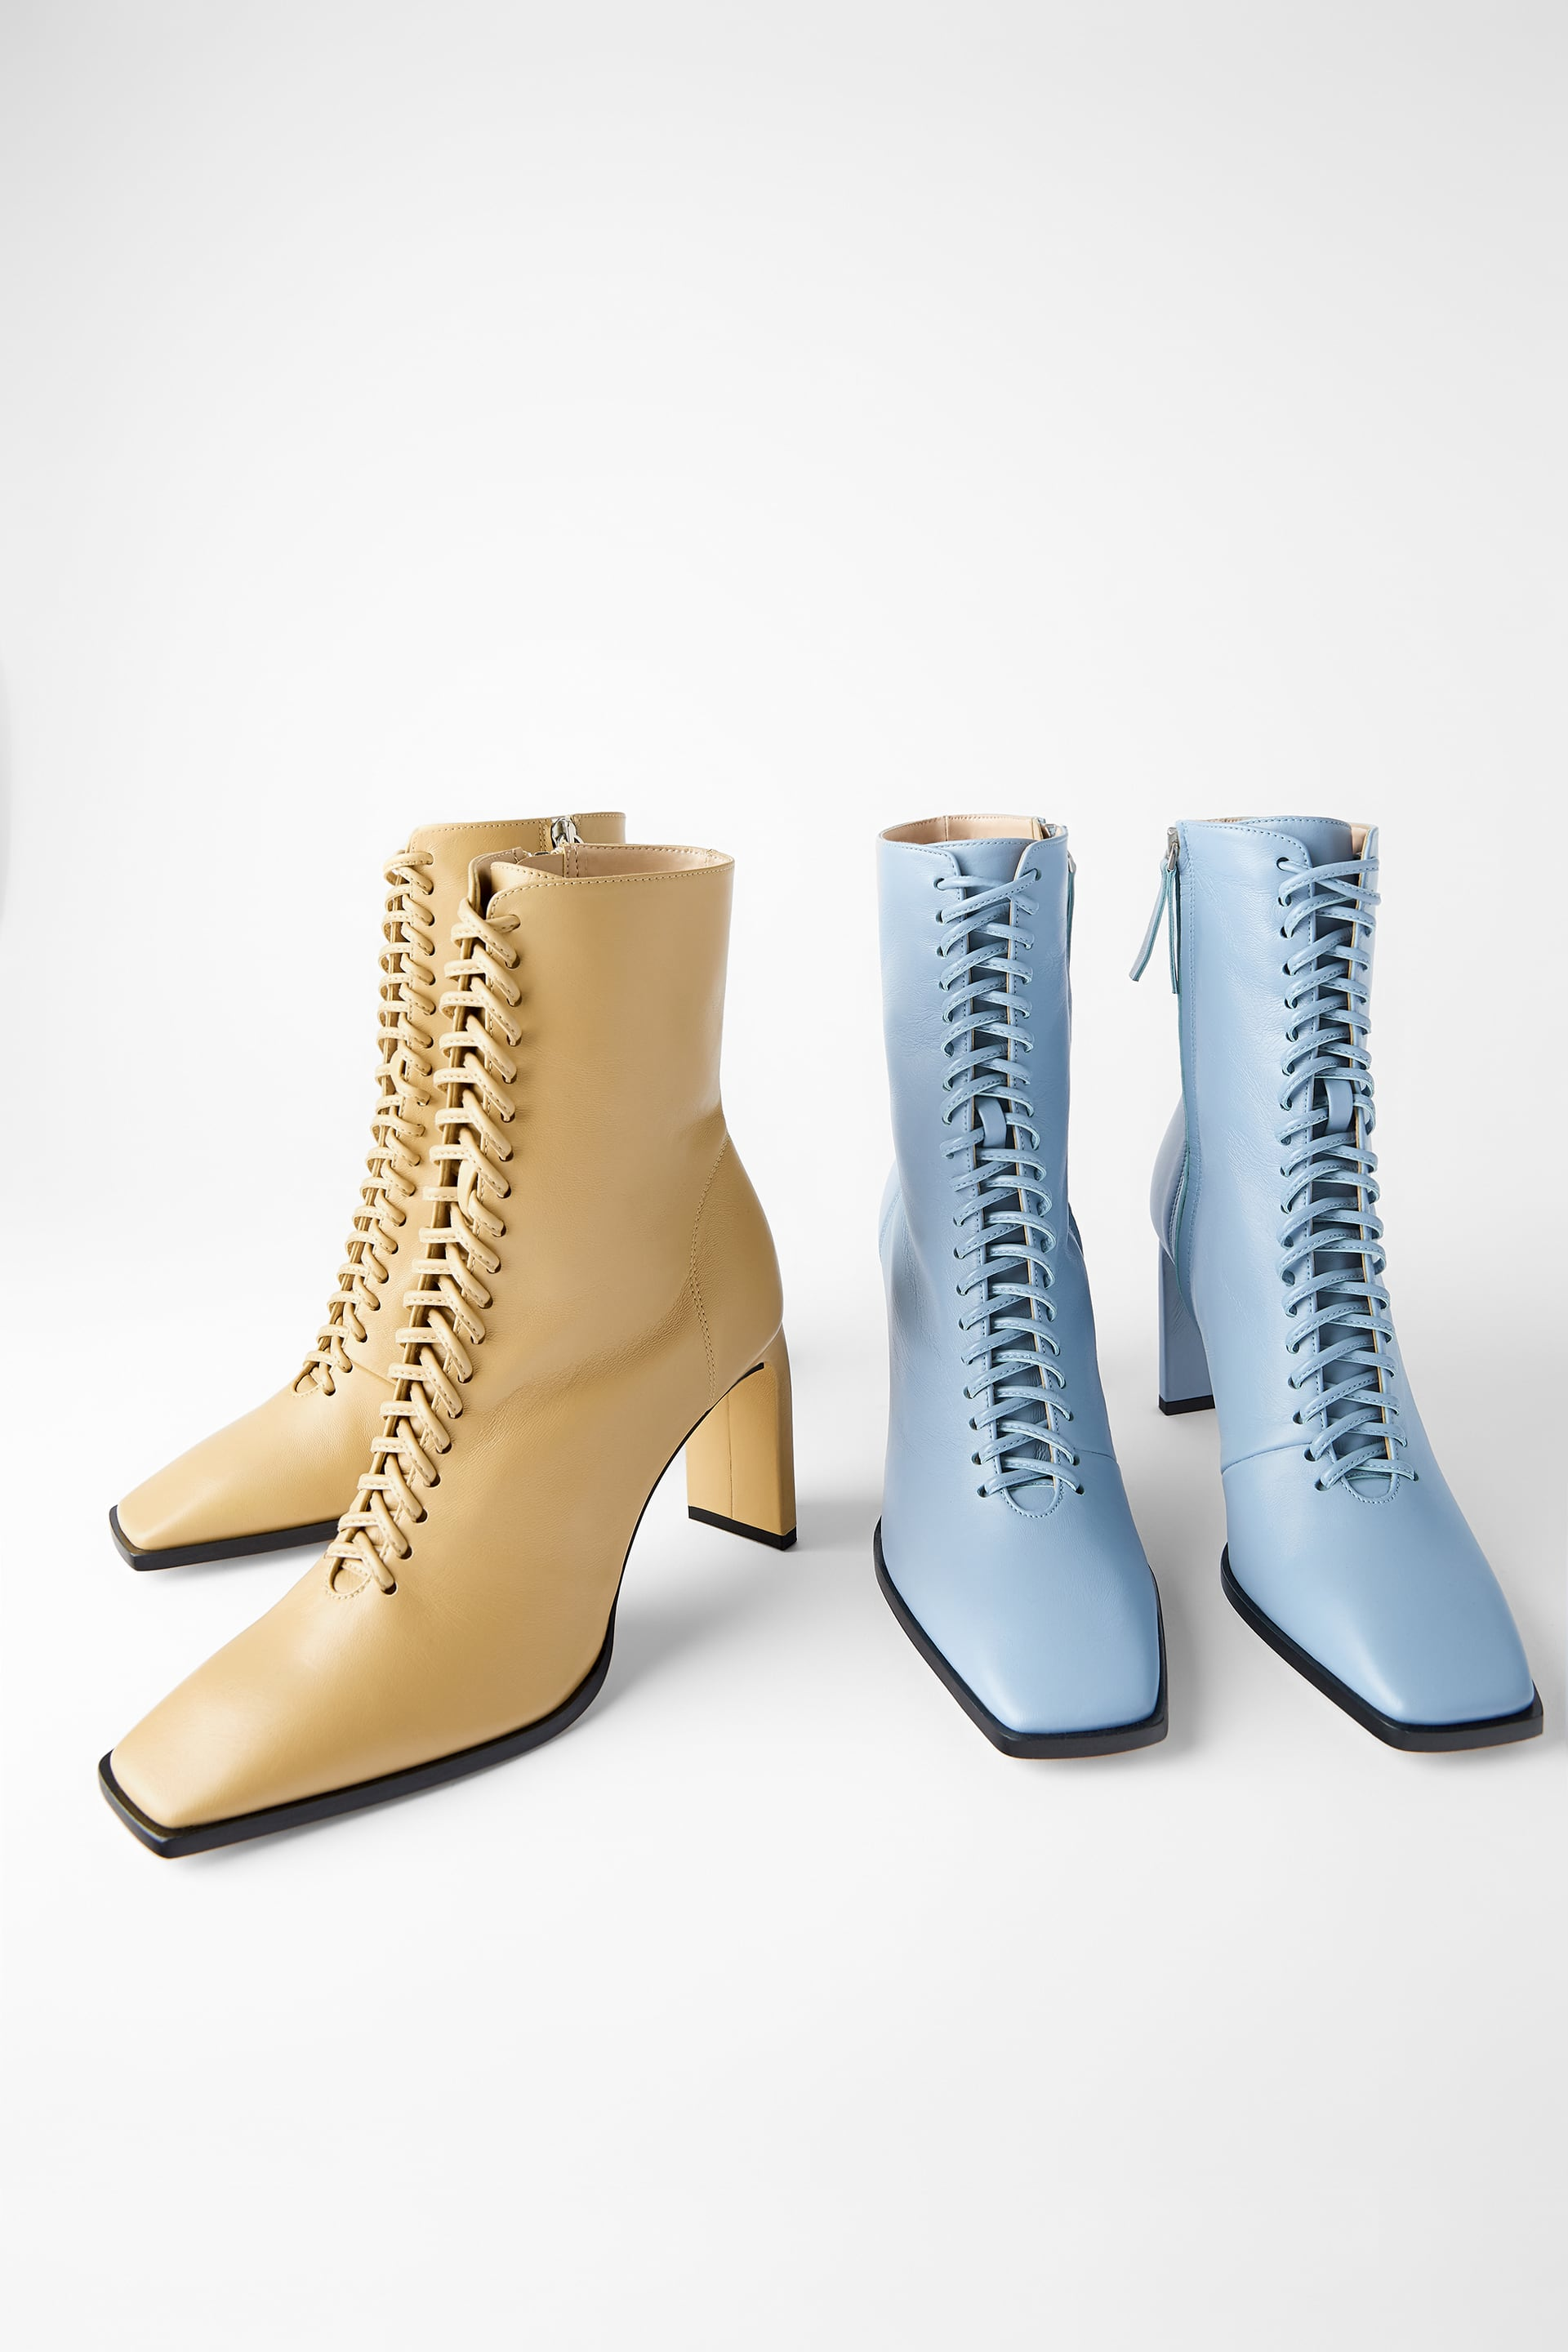 Also loving these from Zara! They're killing the fall game.